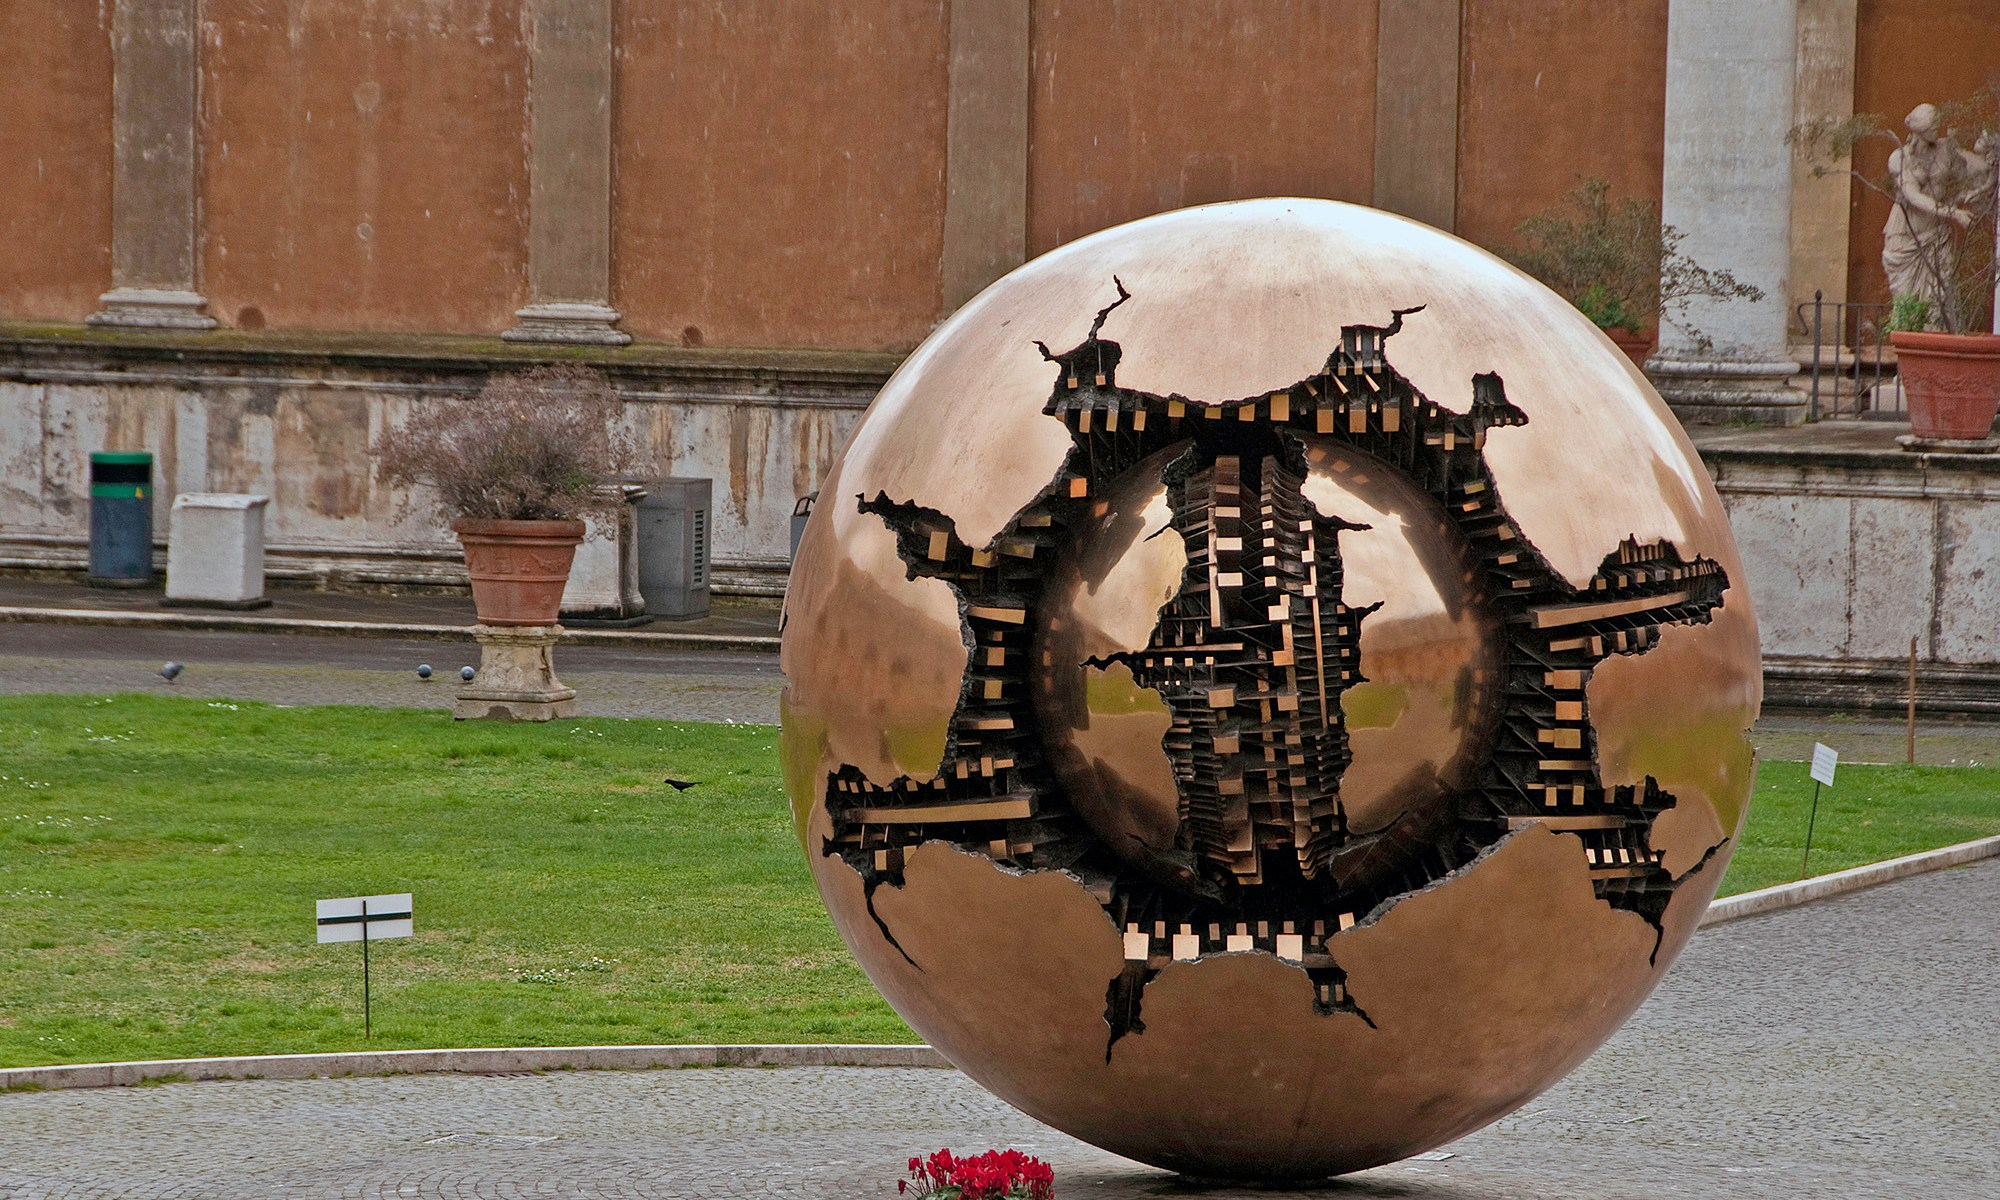 Sphere within a Sphere Sculpture